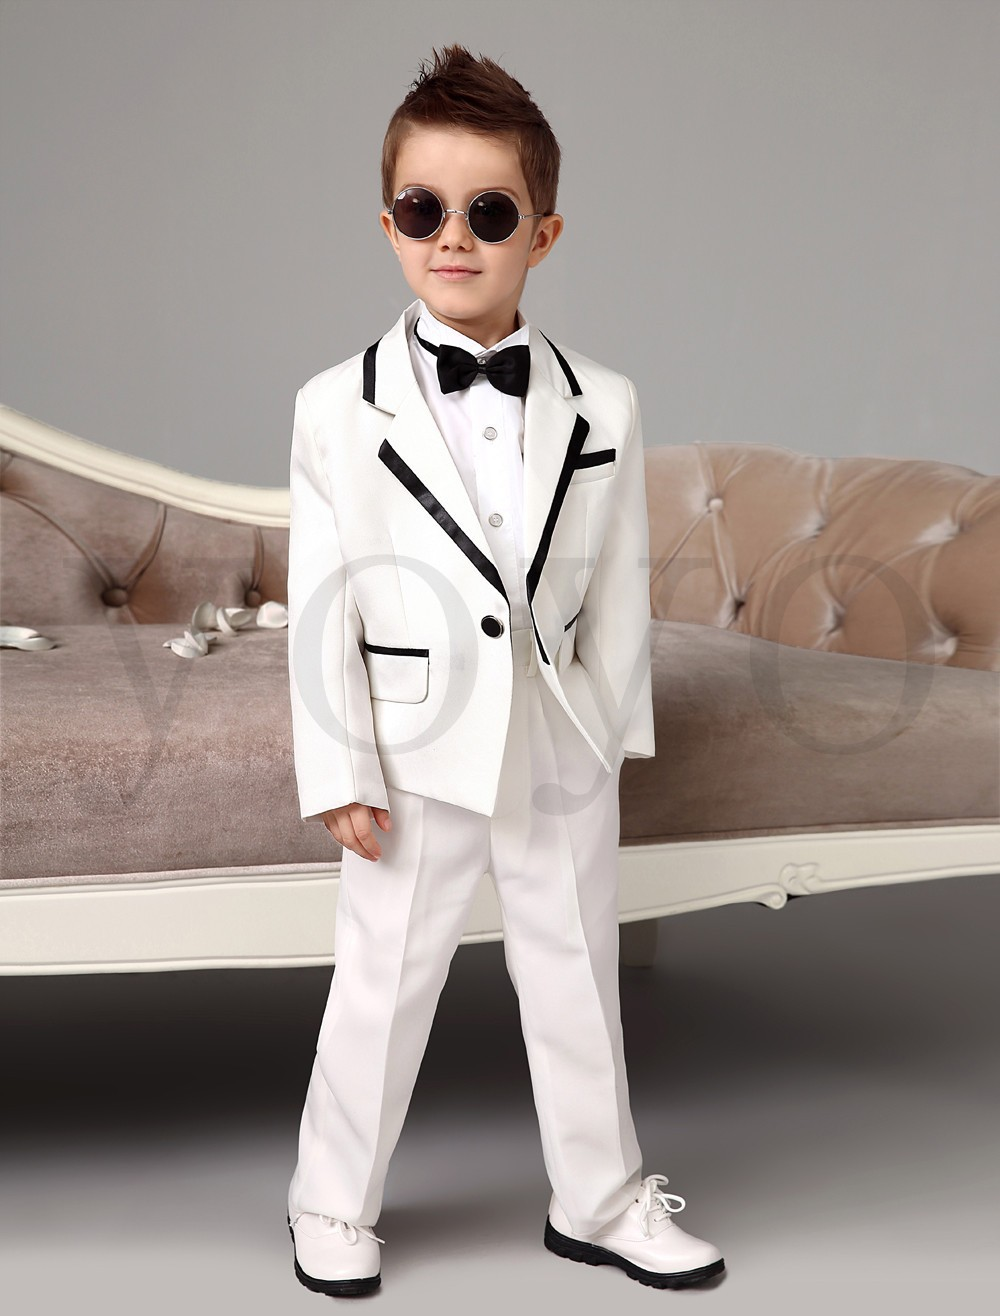 2017 Autumn New Boys White Tuxedos Wedding Attire Baby Boy Dress Clothes Coat Pants Tie Suits In From Mother Kids On